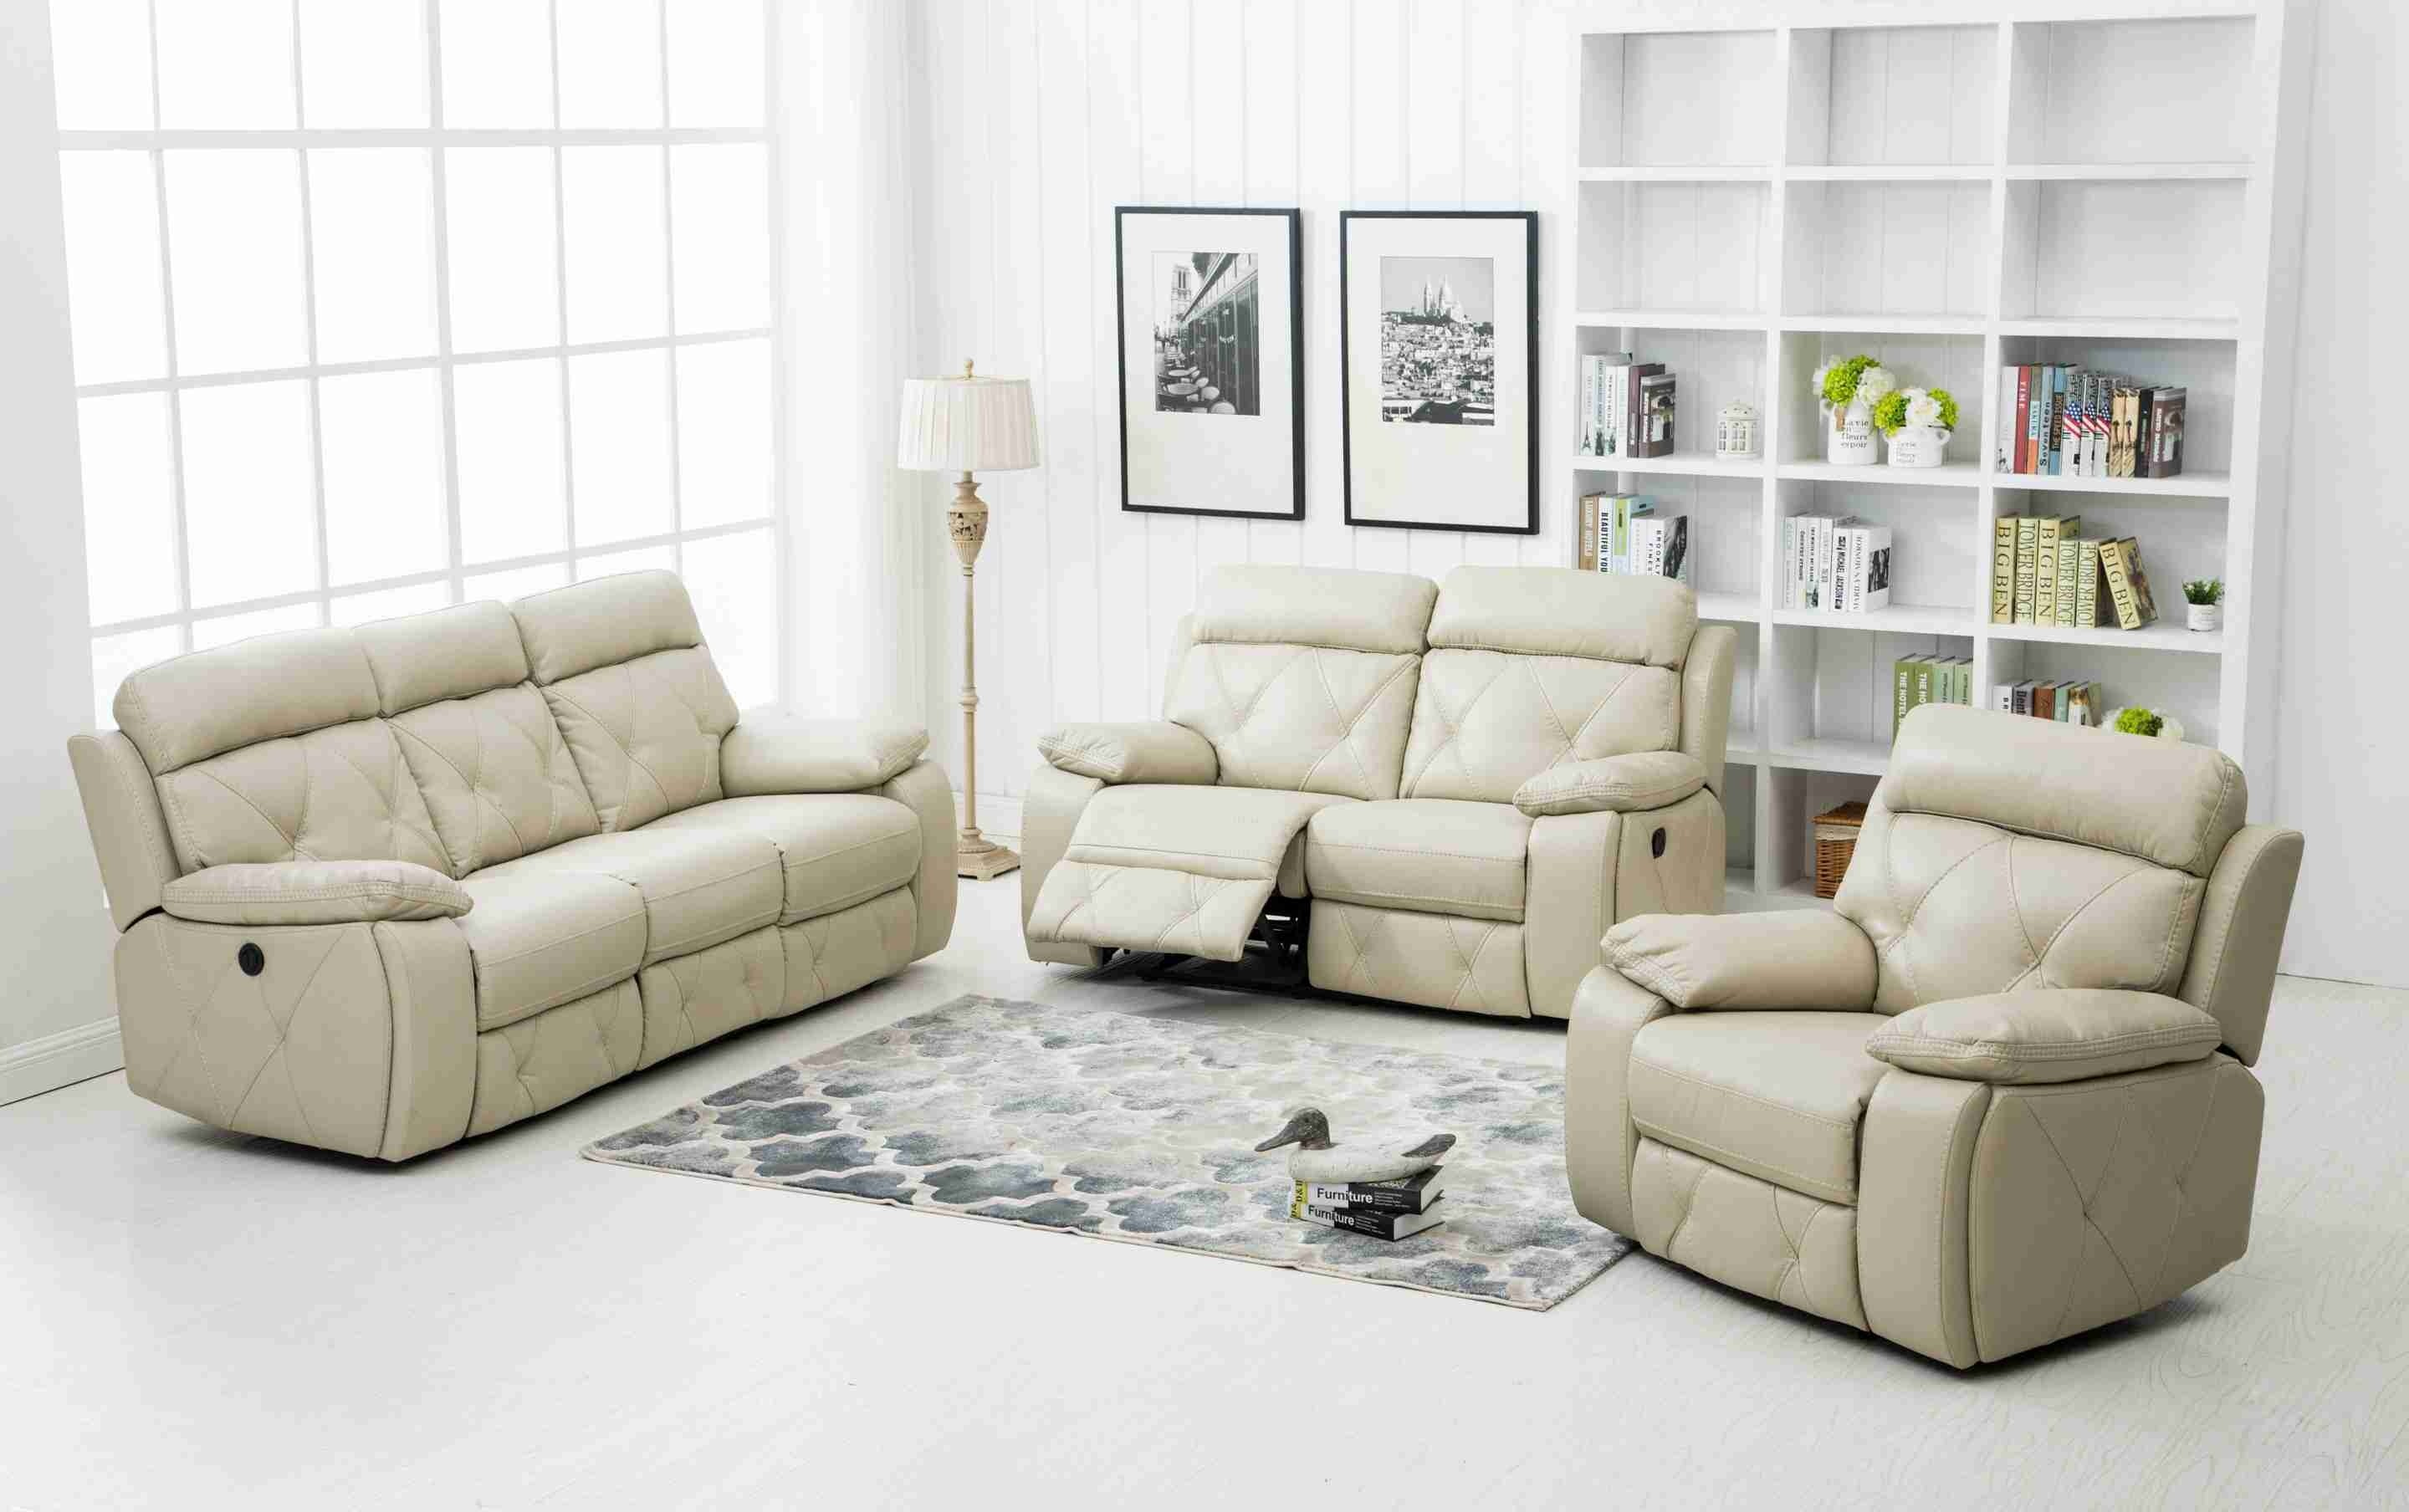 Excellent 3 Pcs Stitching Bonded Leather Sofa Set Recliner Ivory Uh Creativecarmelina Interior Chair Design Creativecarmelinacom